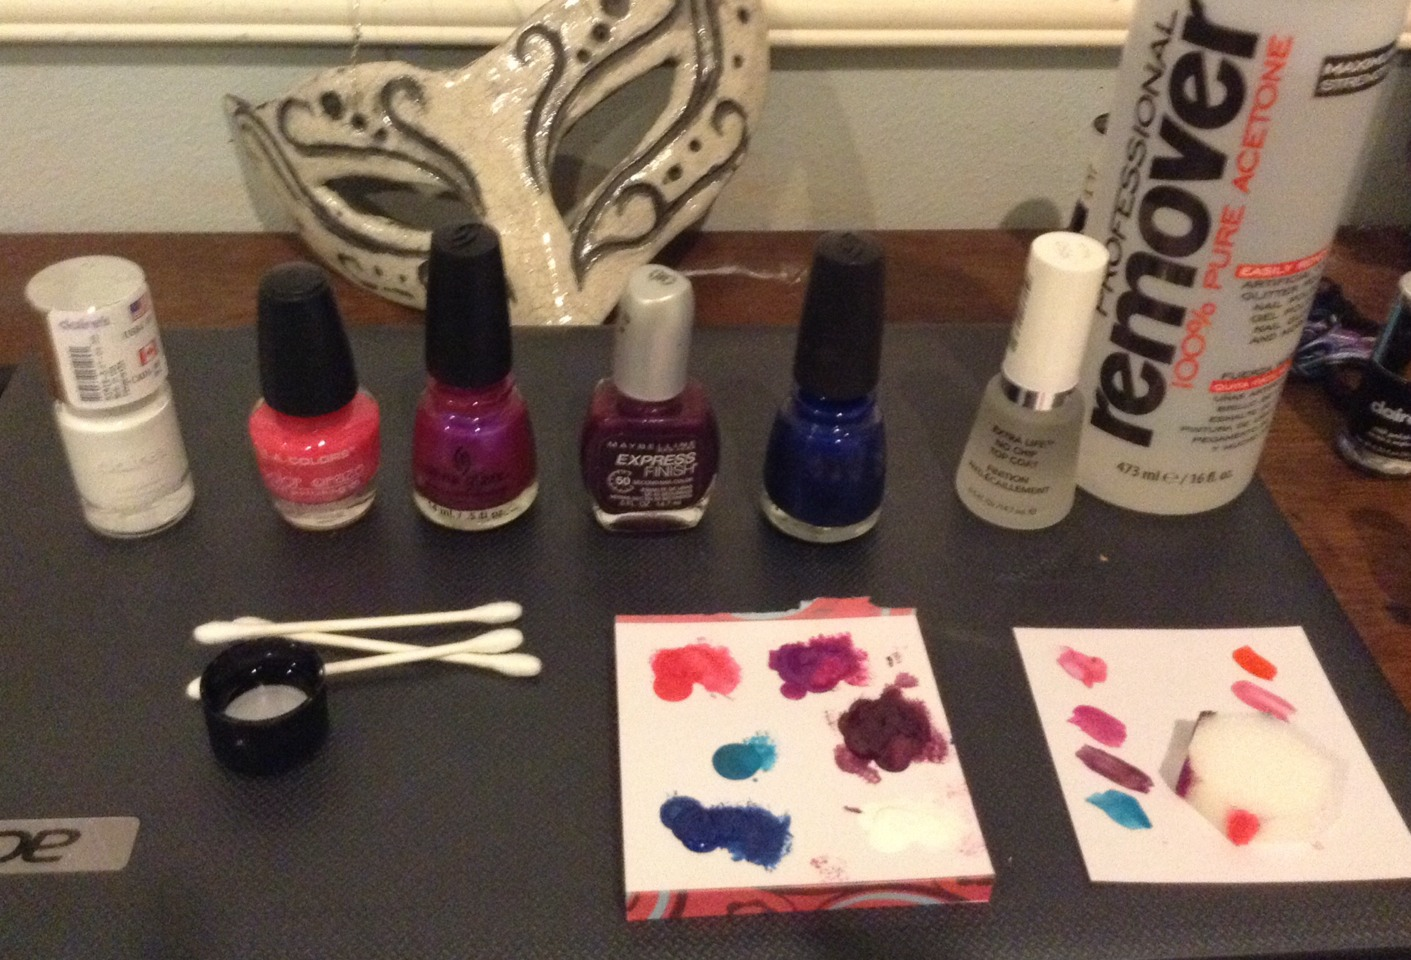 Things you need, pink, light purple, dark purple, dark blue, and white nail polish. A sponge, acetone or nail polish remover, Q-tips and something to put the polish on